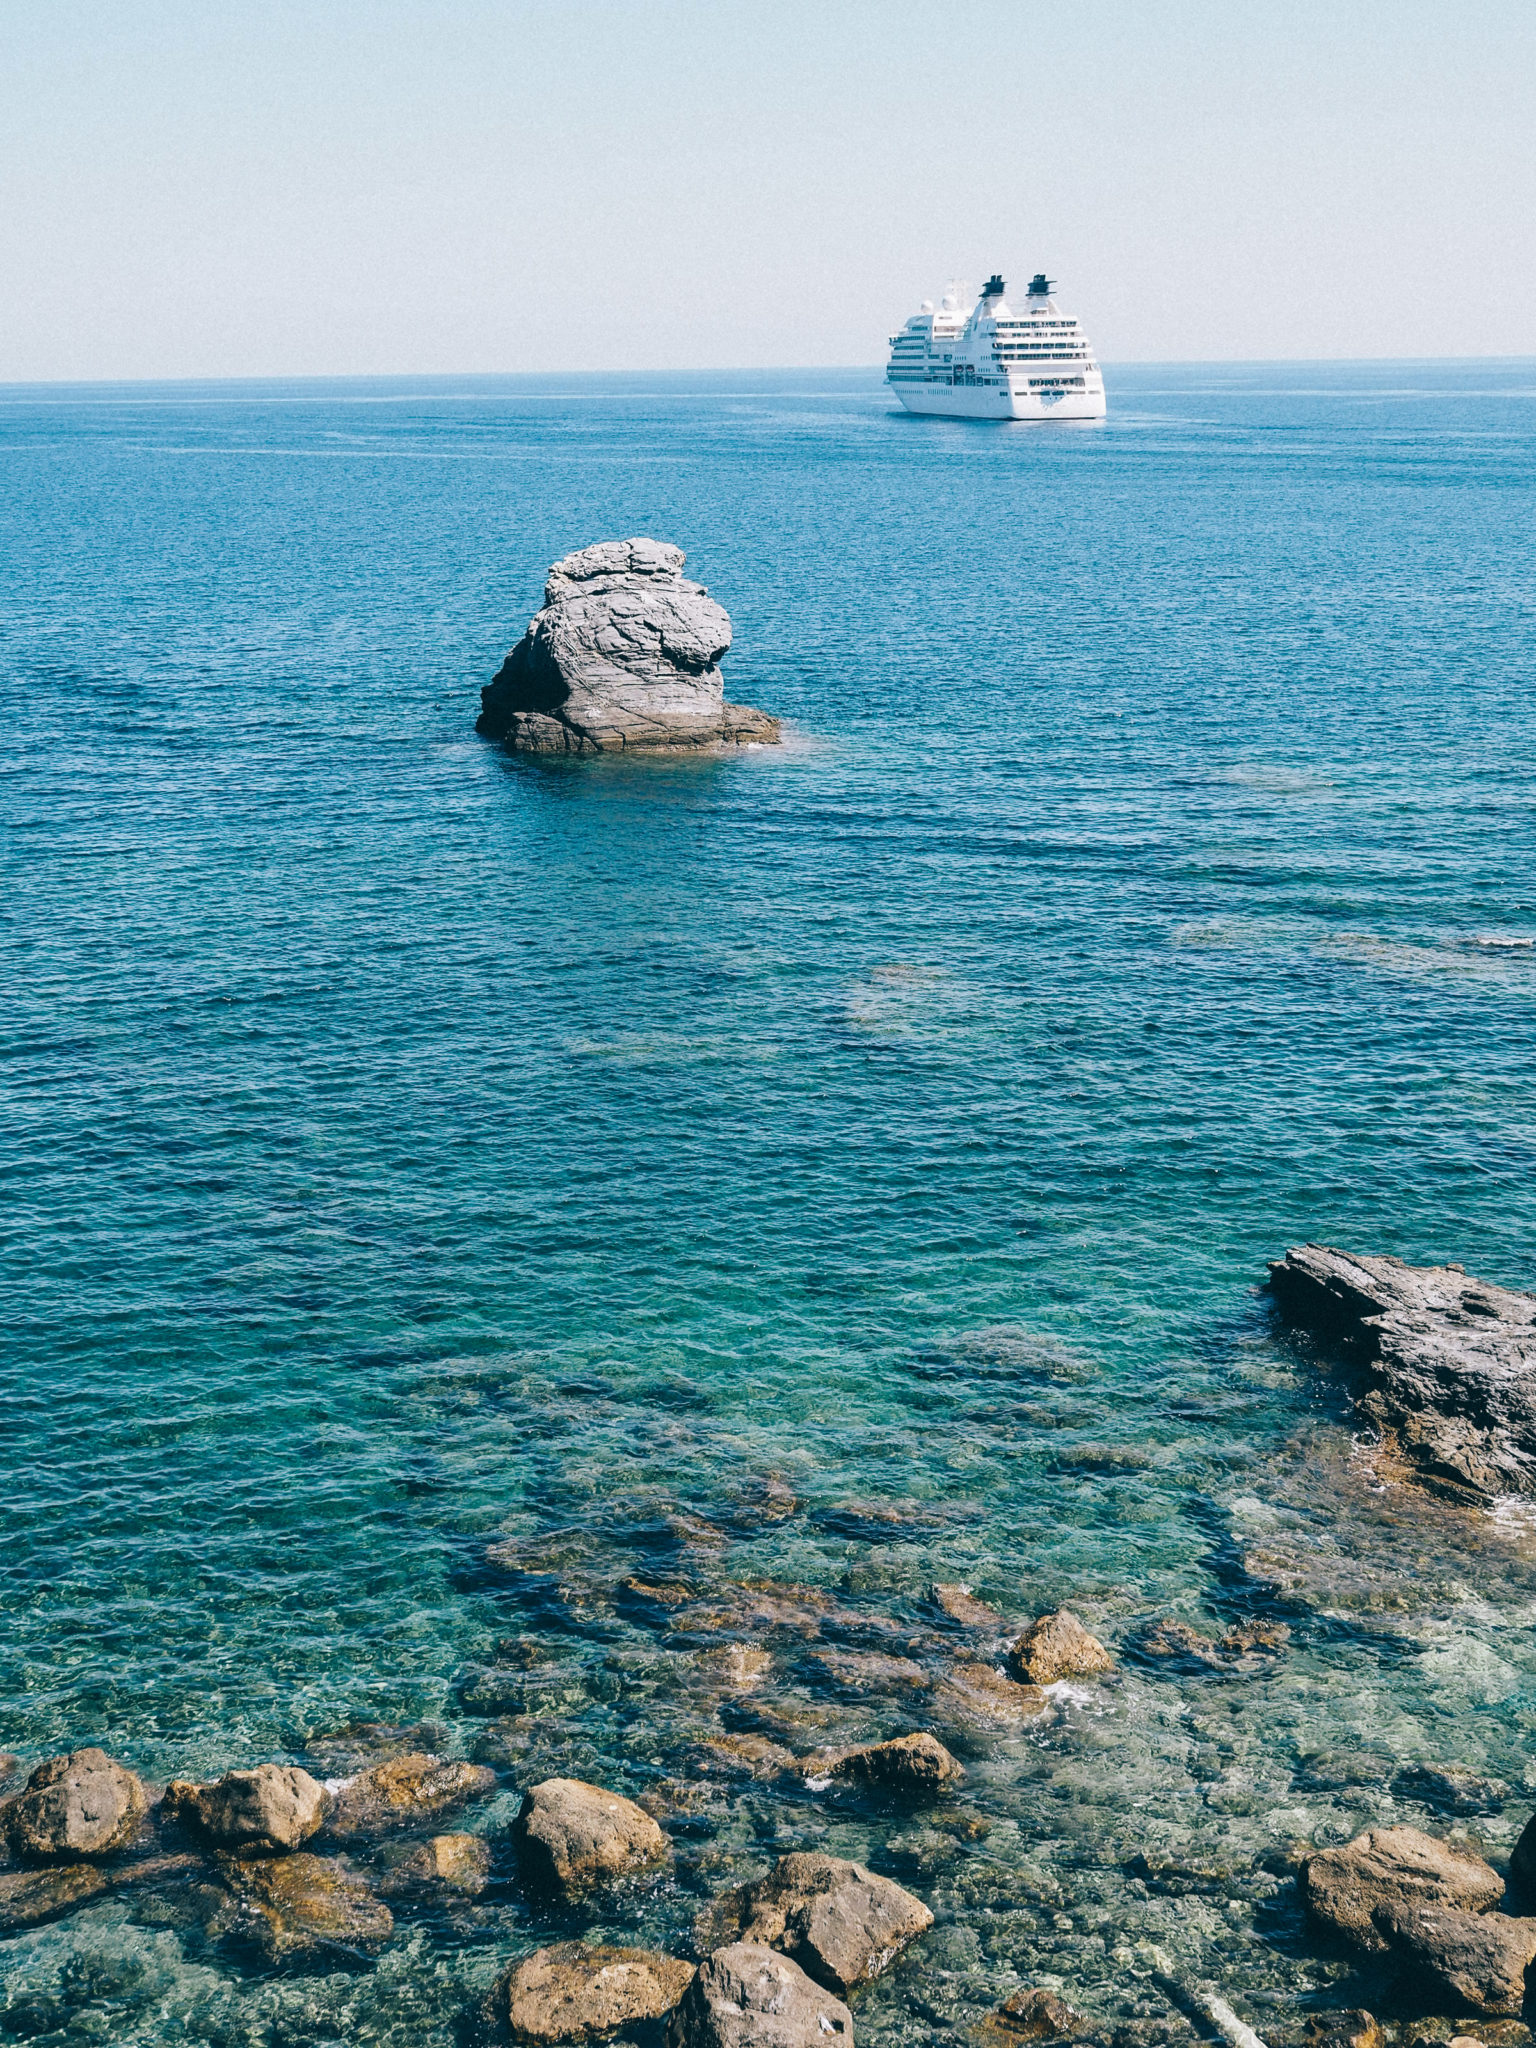 The Seabourn Experience: A Full Seabourn Cruise Review